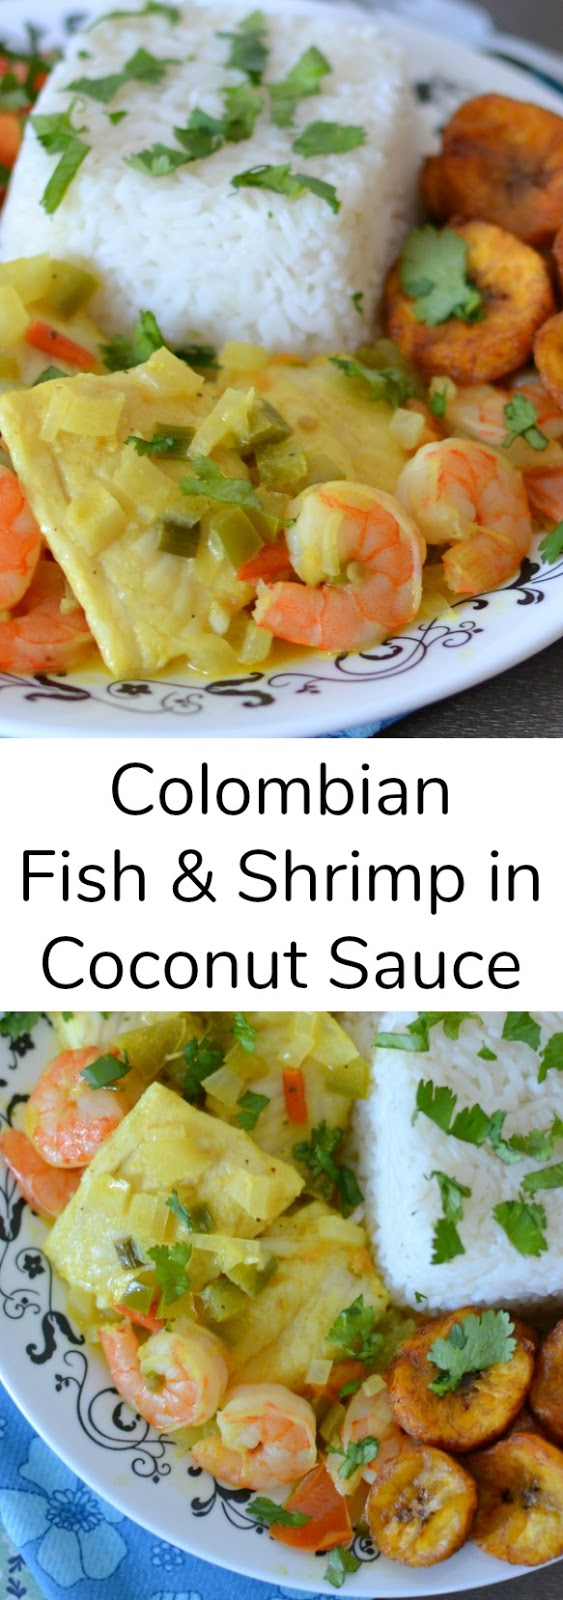 Colombian Fish and Shrimp in Coconut Sauce Recipe from Hot Eats and Cool Reads! This dinner recipe is so unique and flavorful! Best when served with chopped tomatoes and onions, fried plantains and rice!